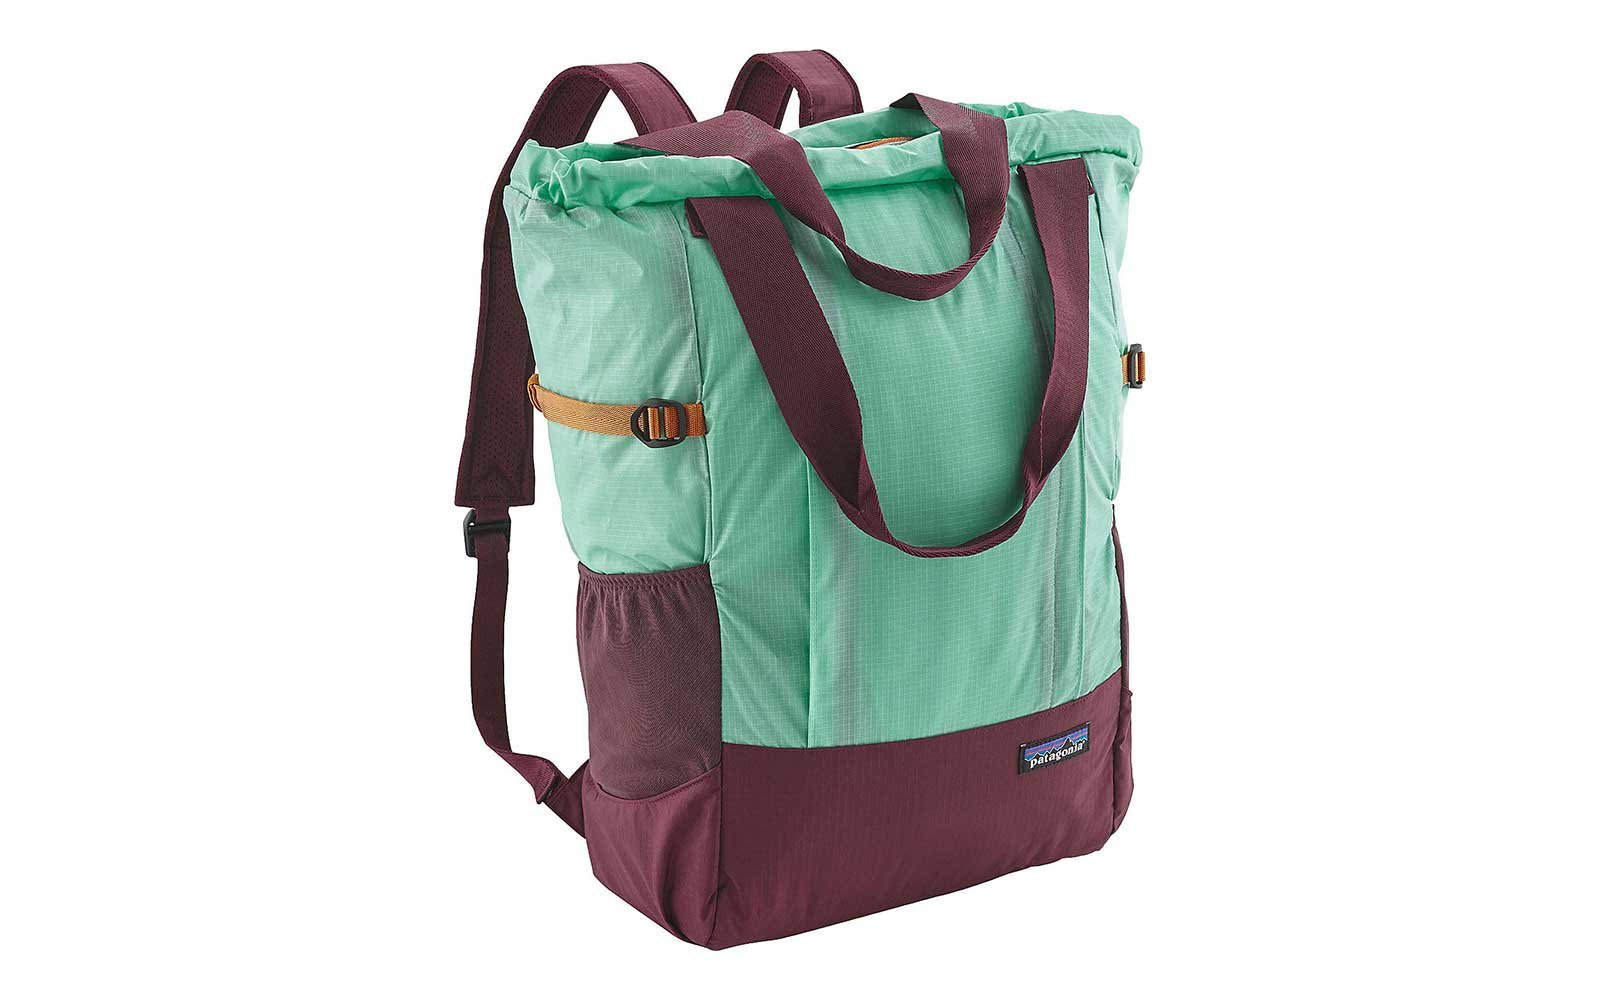 Patagonia Lightweight Travel Tote Bag in Big Sur Blue